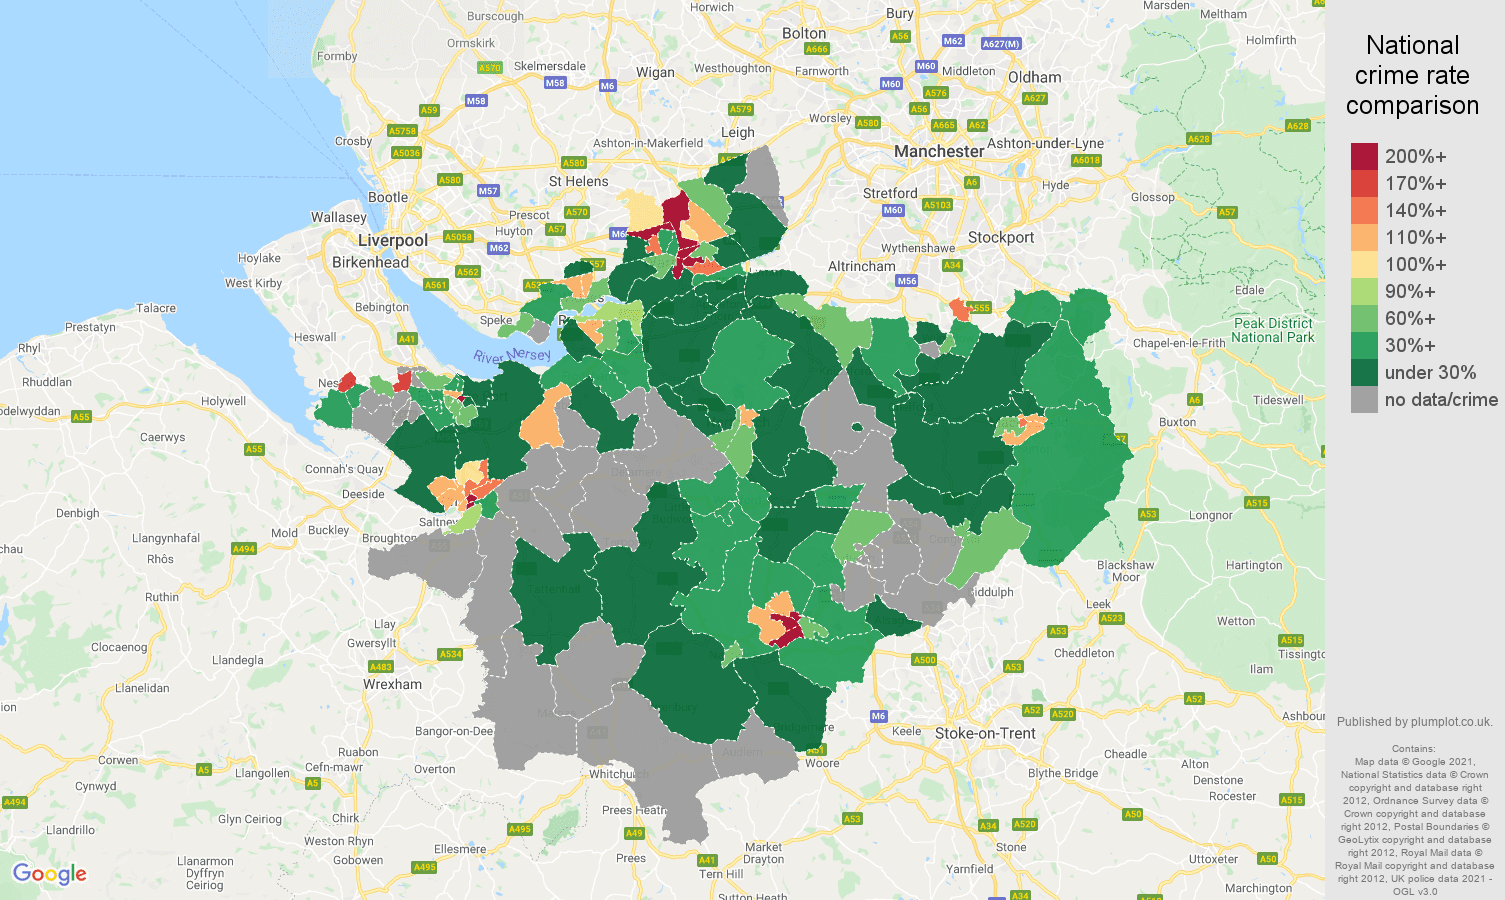 Cheshire bicycle theft crime rate comparison map